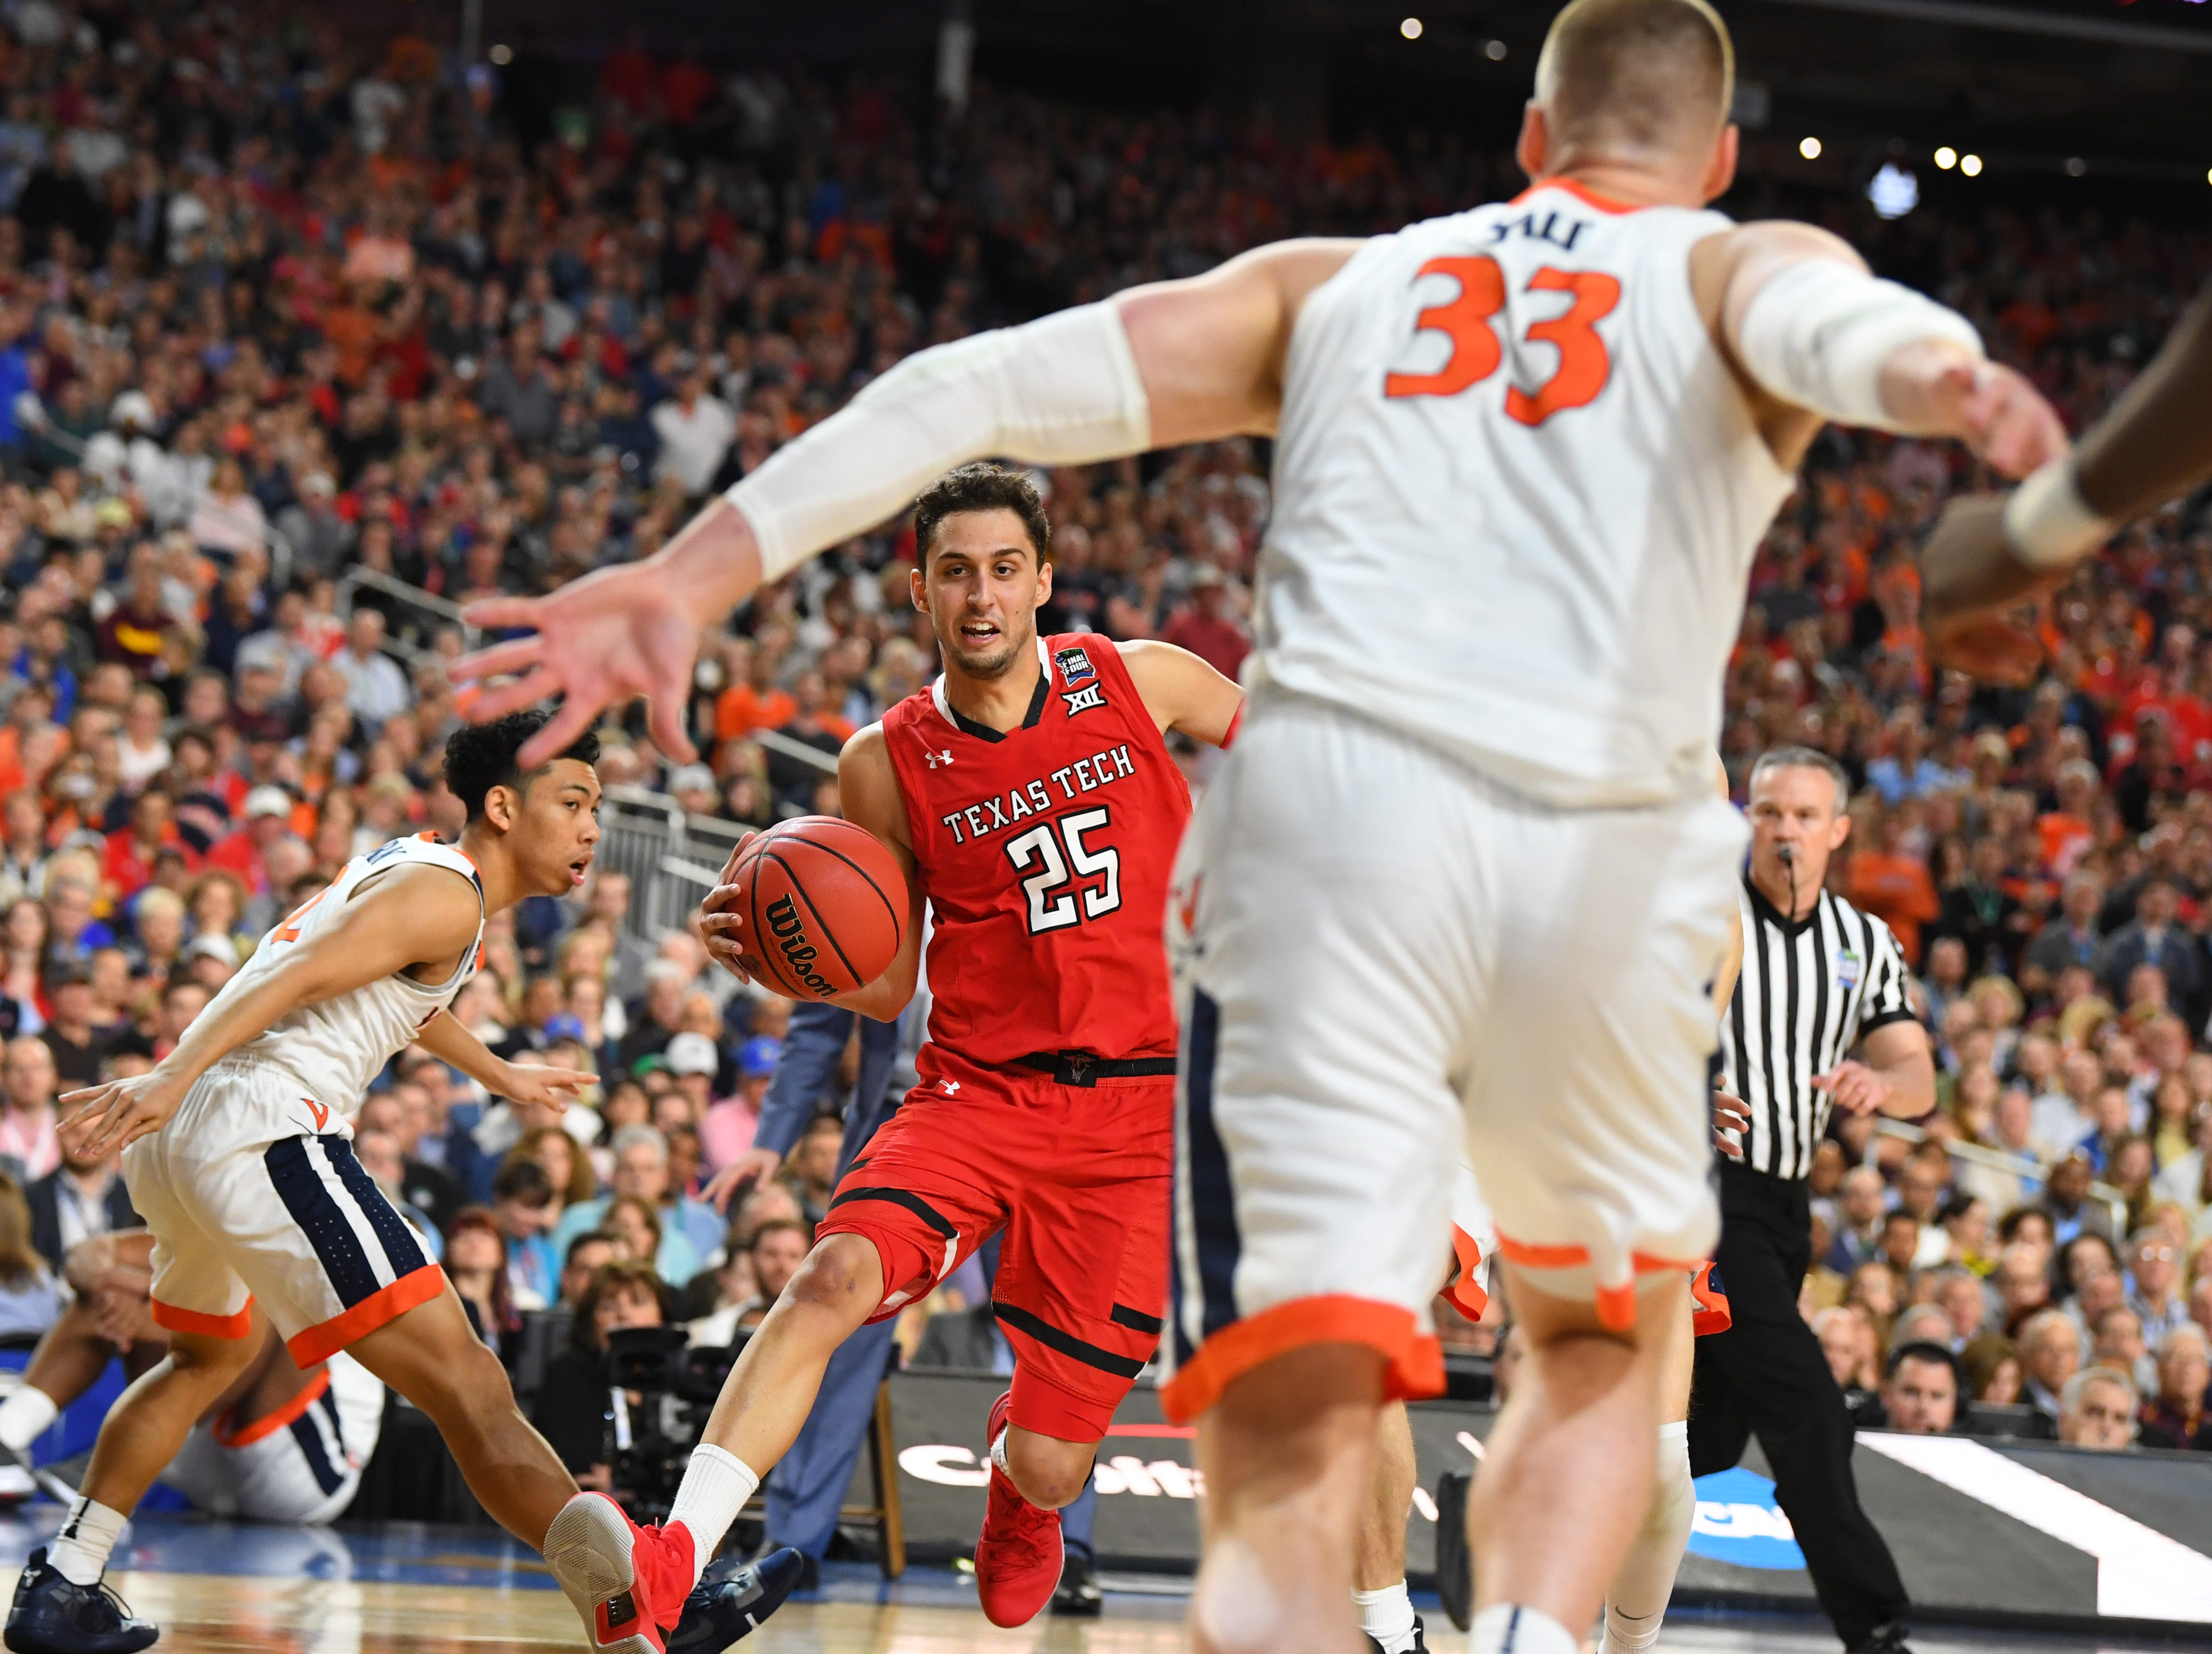 Apr 8, 2019; Minneapolis, MN, USA; Texas Tech Red Raiders guard Davide Moretti (25) drives to the basket defended by Virginia Cavaliers center Jack Salt (33) in the championship game of the 2019 men's Final Four at US Bank Stadium. Mandatory Credit: Robert Deutsch-USA TODAY Sports